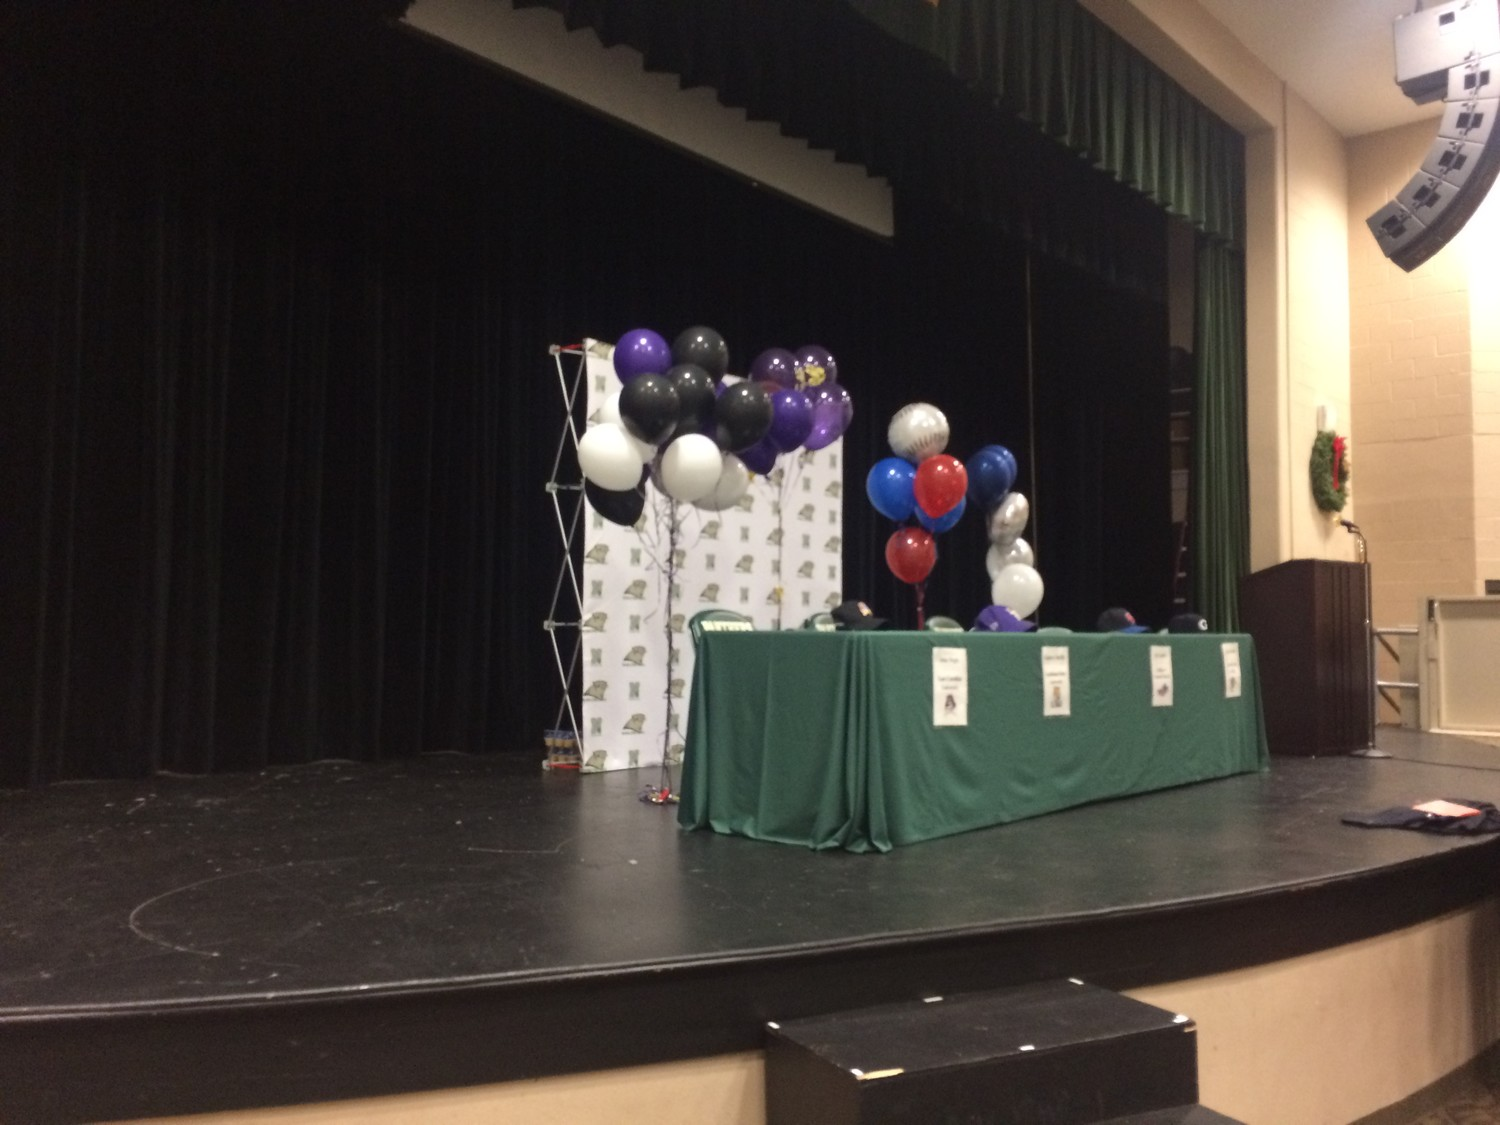 The stage is set for the Nease High School signing day event.